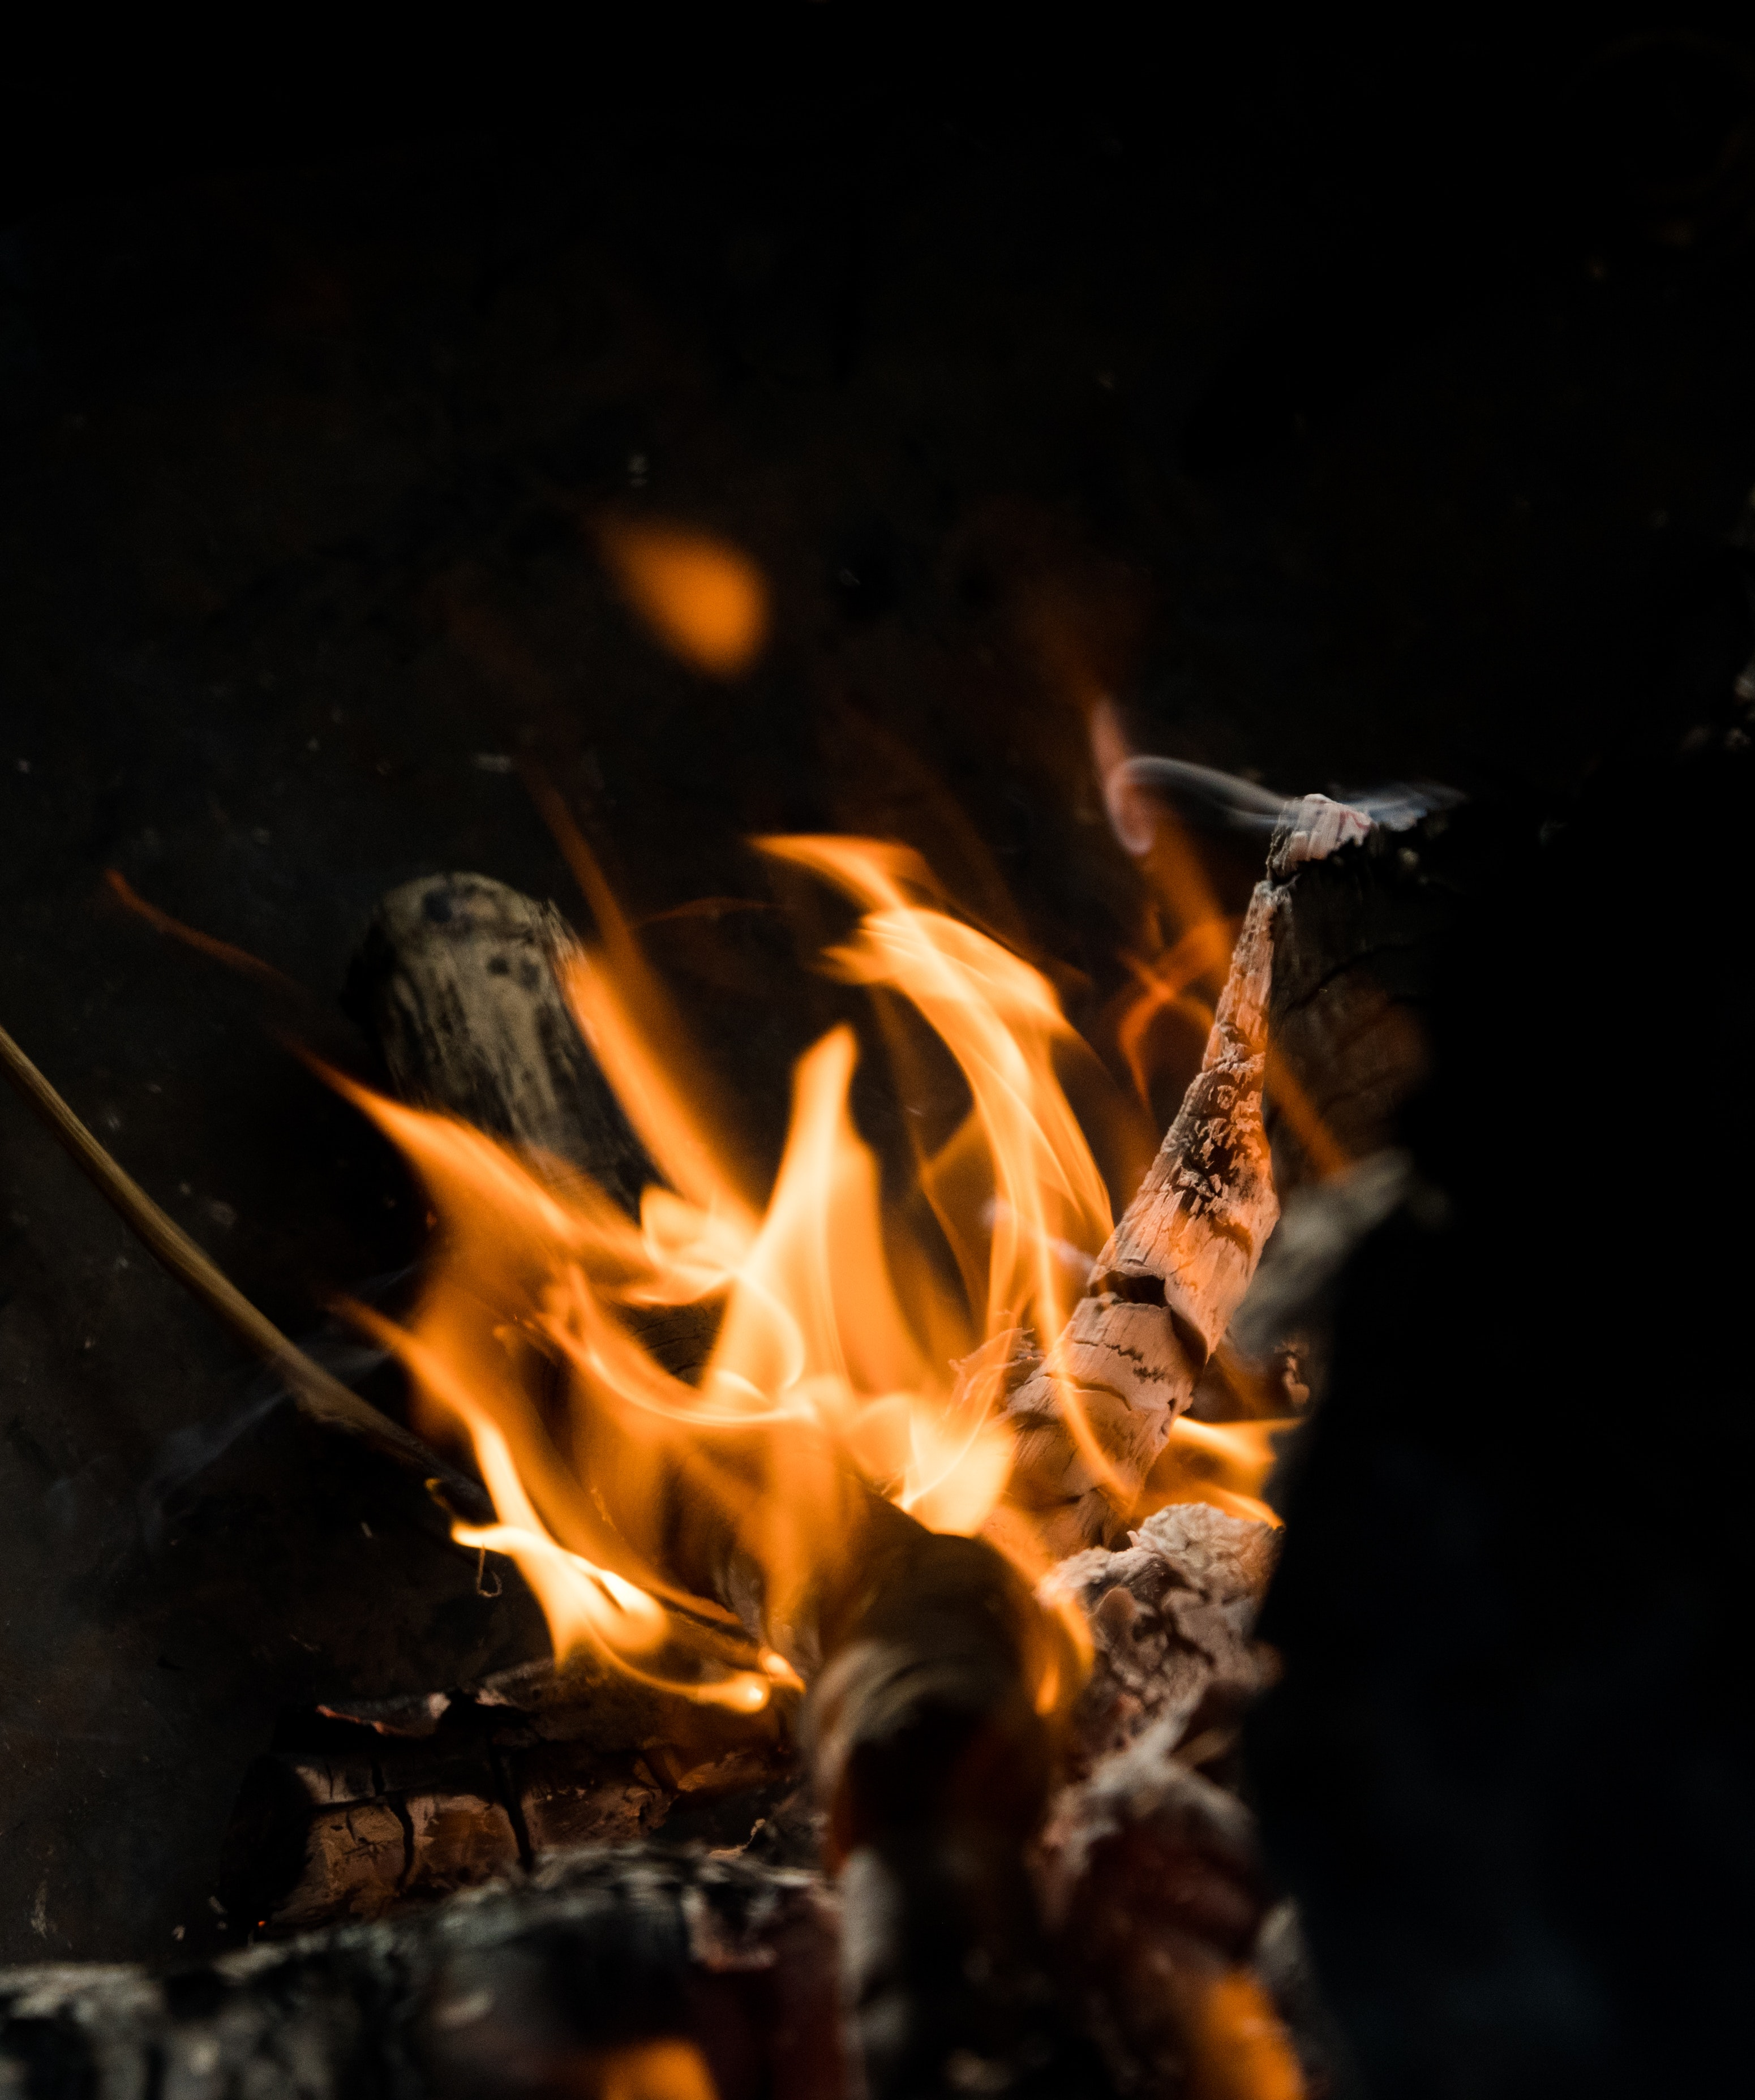 99573 Screensavers and Wallpapers Bonfire for phone. Download Fire, Bonfire, Coals, Dark, Flame, Firewood, Ash pictures for free